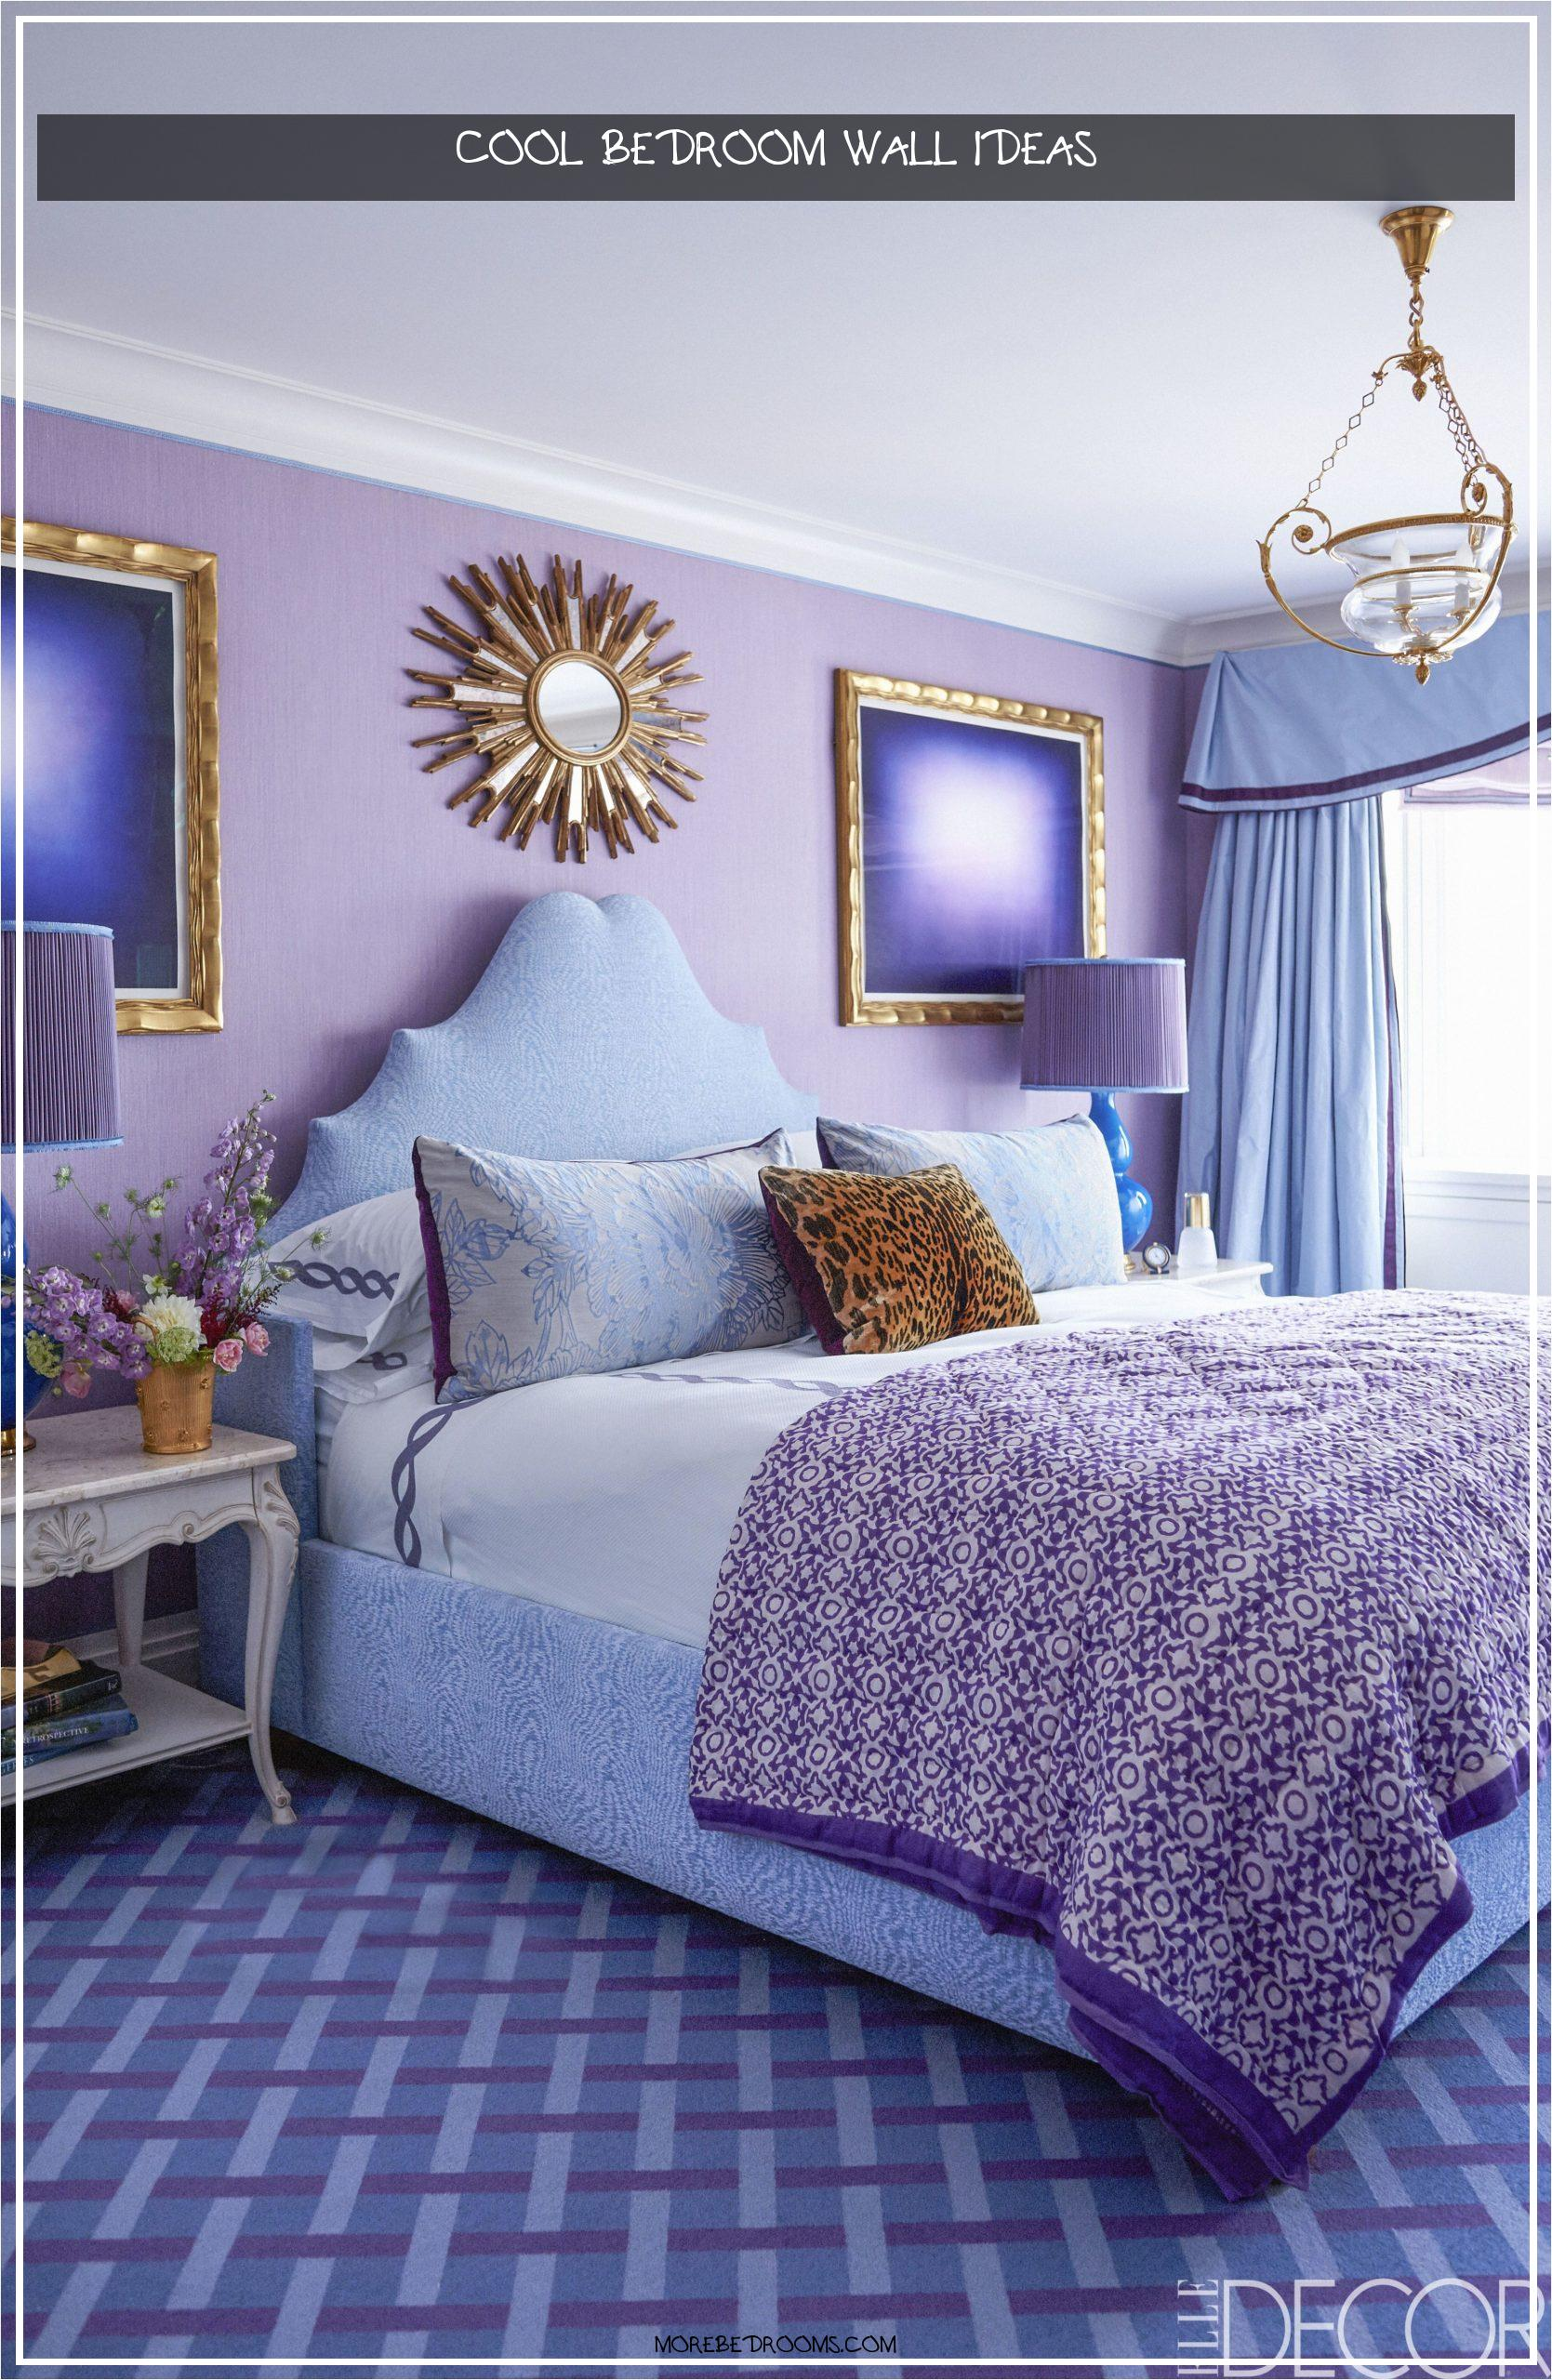 Cool Bedroom Wall Ideas Vxcy4e Lovely 25 Purple Room Decorating Ideas How to Use Purple Walls16692560whfi